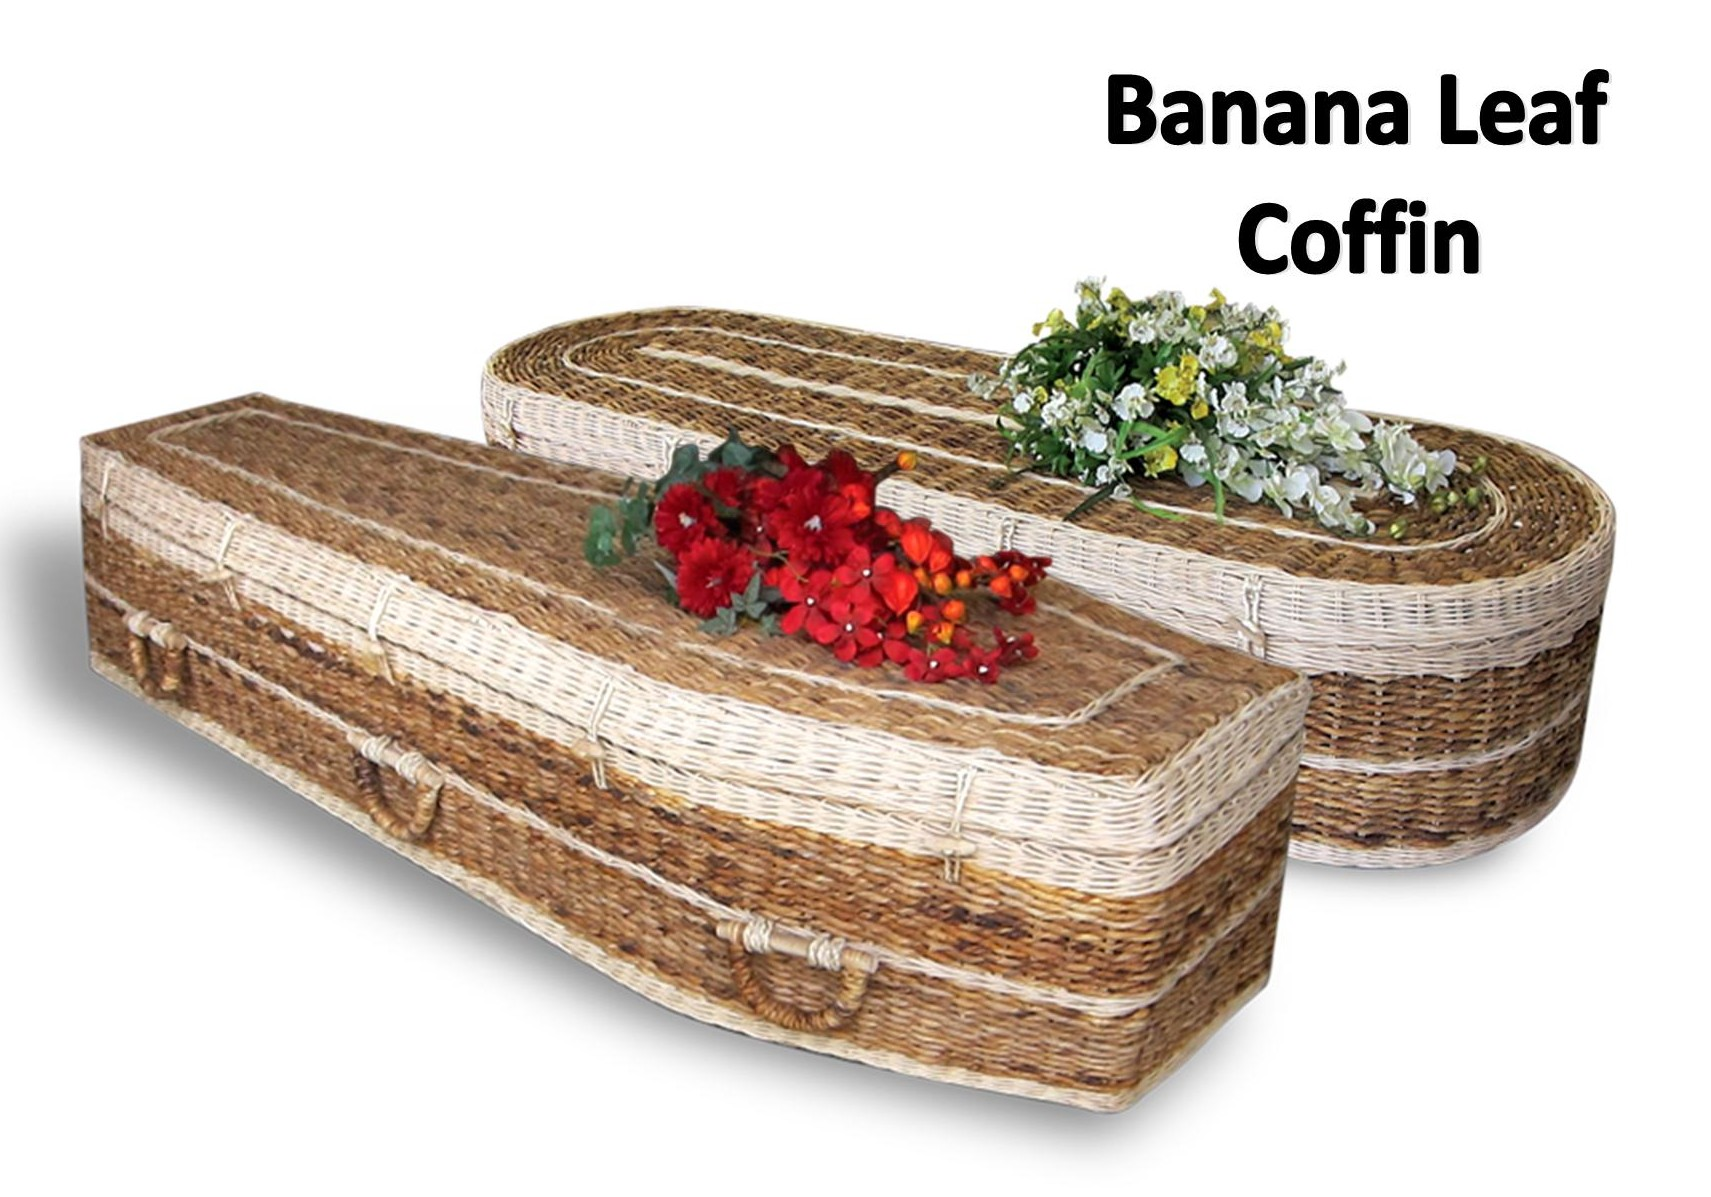 cropped Banana Leaf Coffin